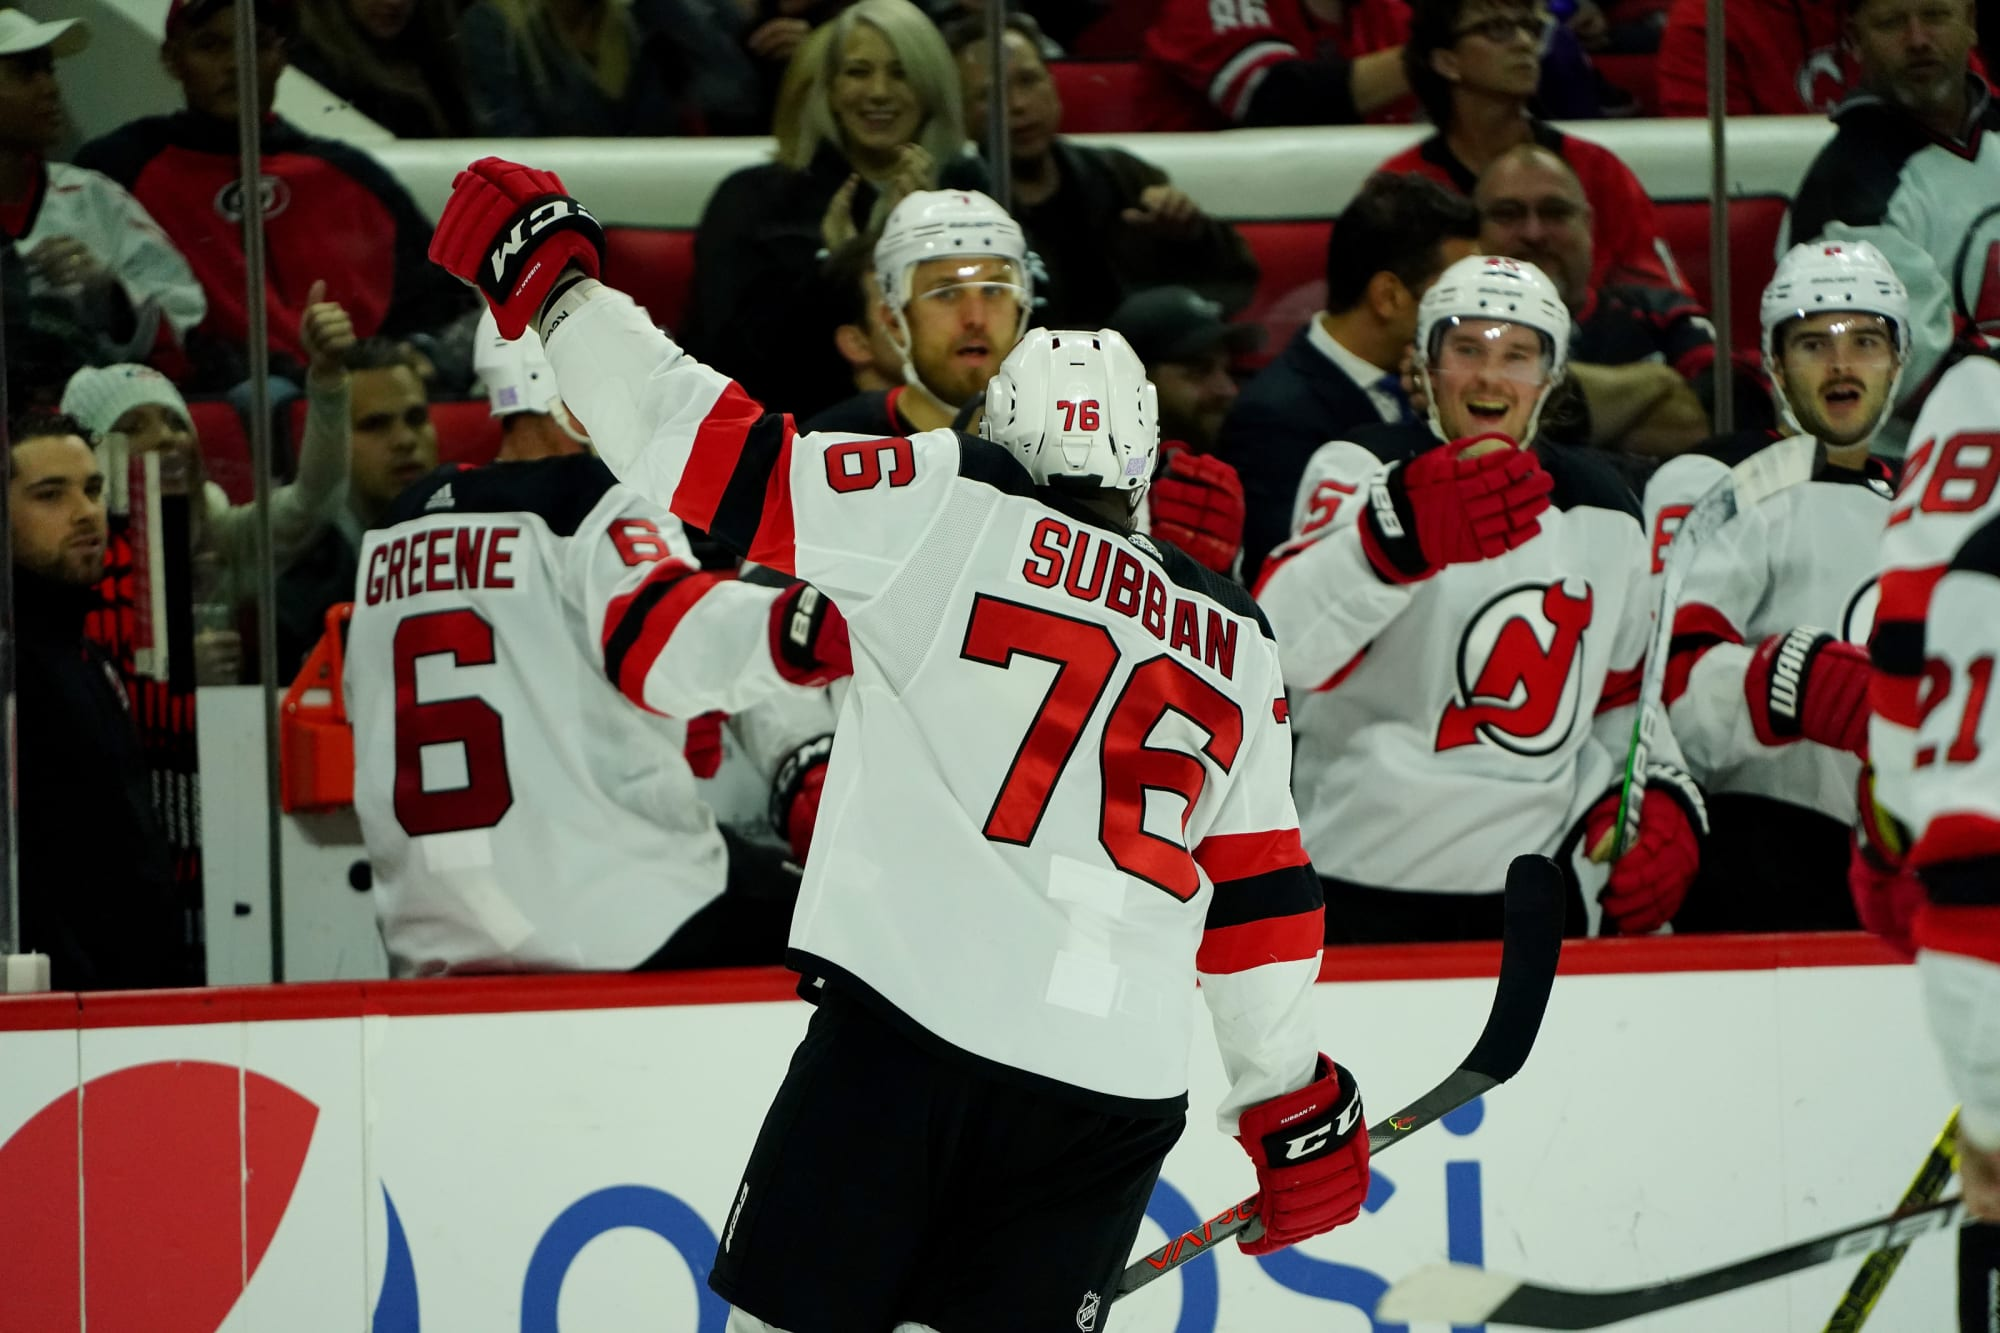 New Jersey Devils: The Power Play Can Help P.K. Subban